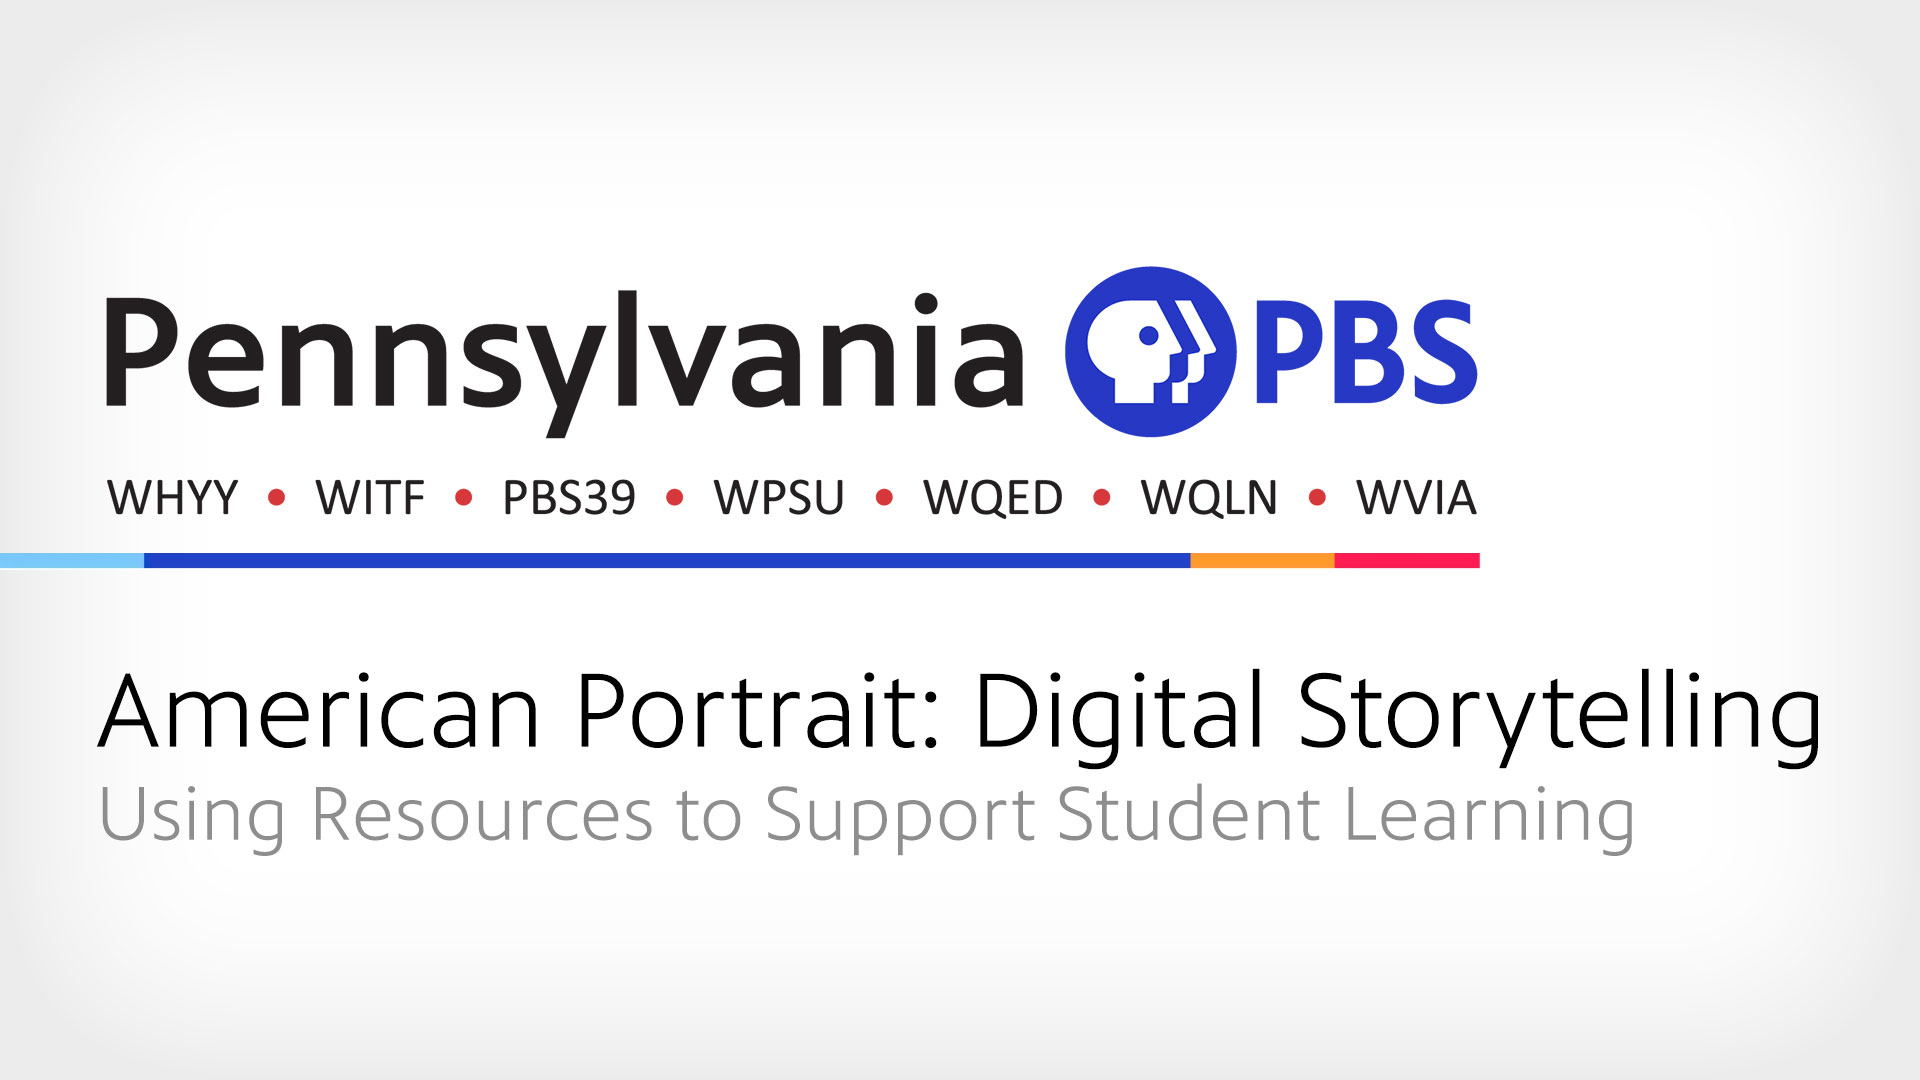 American Portrait: Digital Storytelling